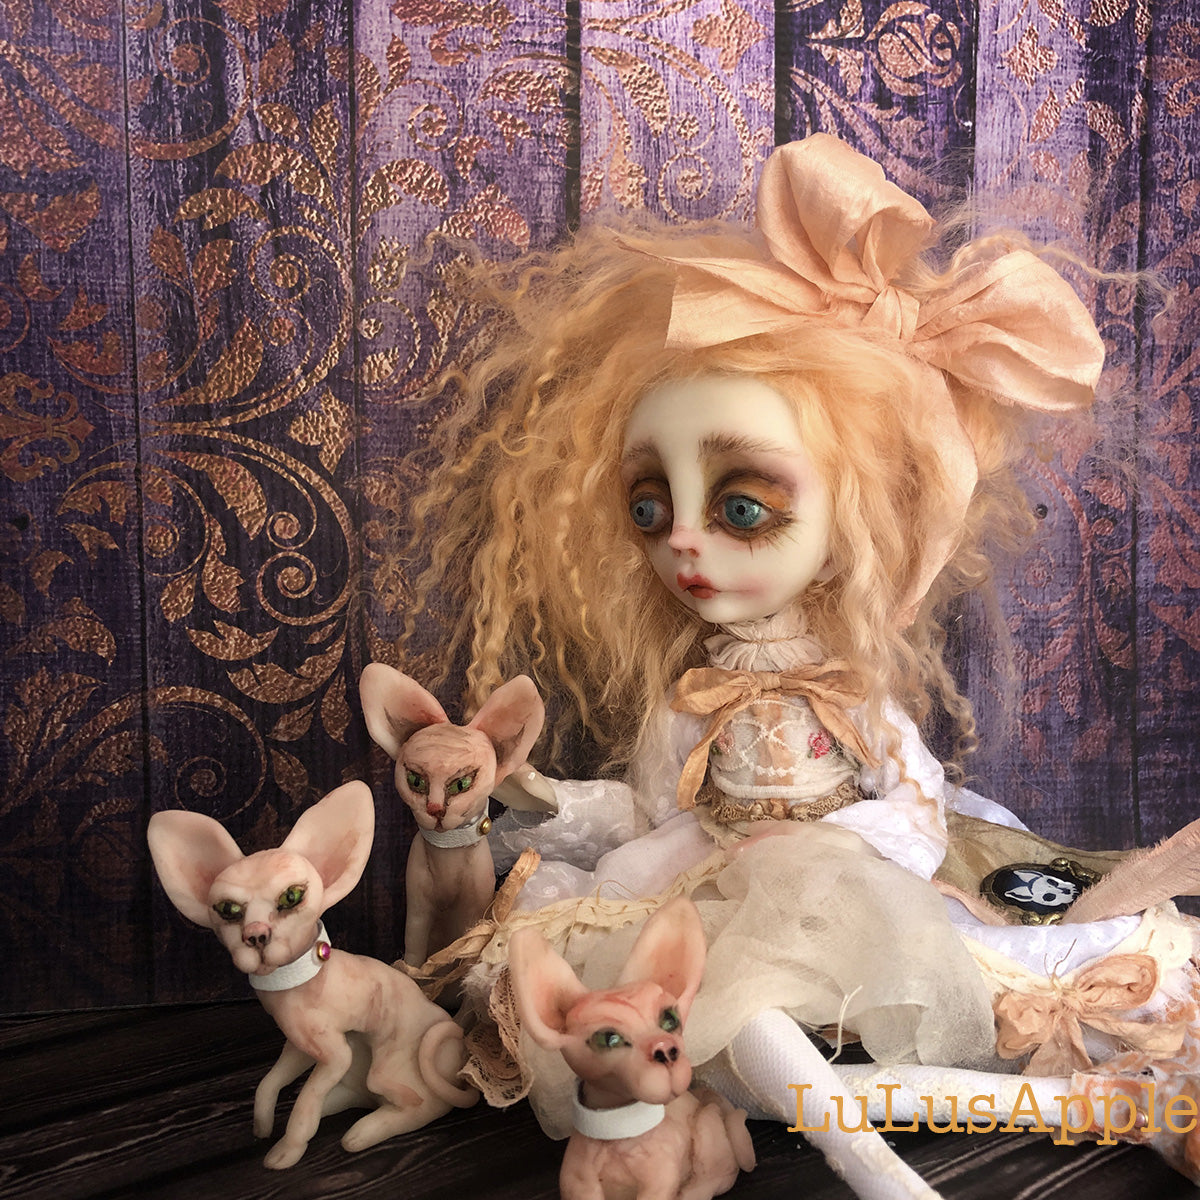 Juniper Bea and sphynx cats OOAK Art Doll LuLusApple